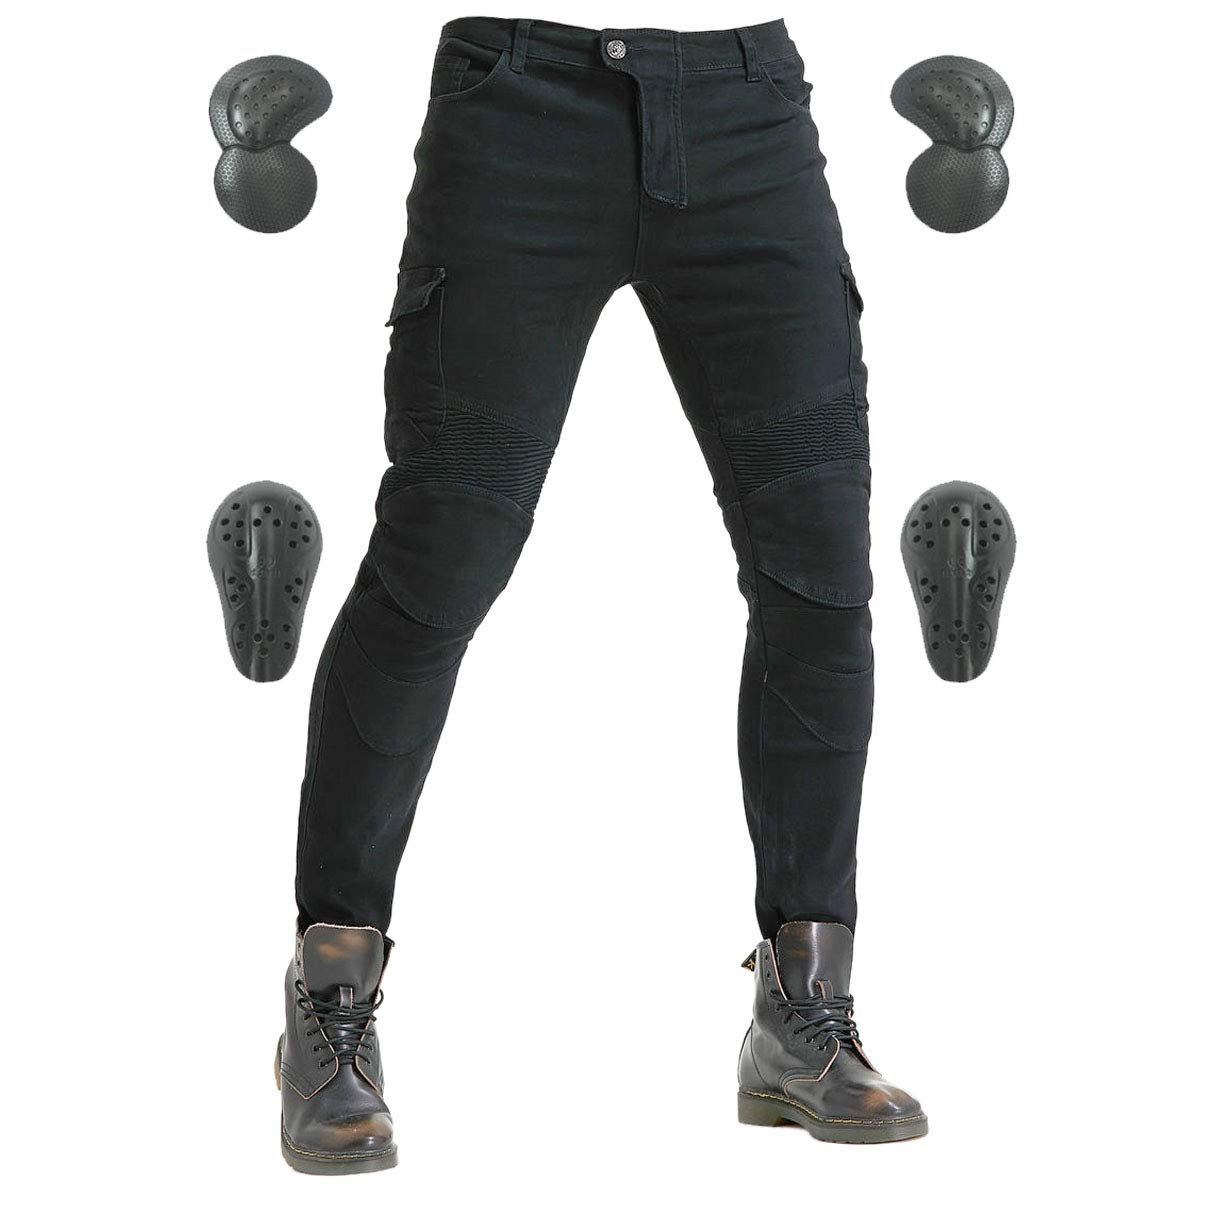 Men's Motorcycle Riding Pants Denim Jeans Protect Pads Equipment with Knee and Hip Armor Pads VES6 (Black, XL=34)